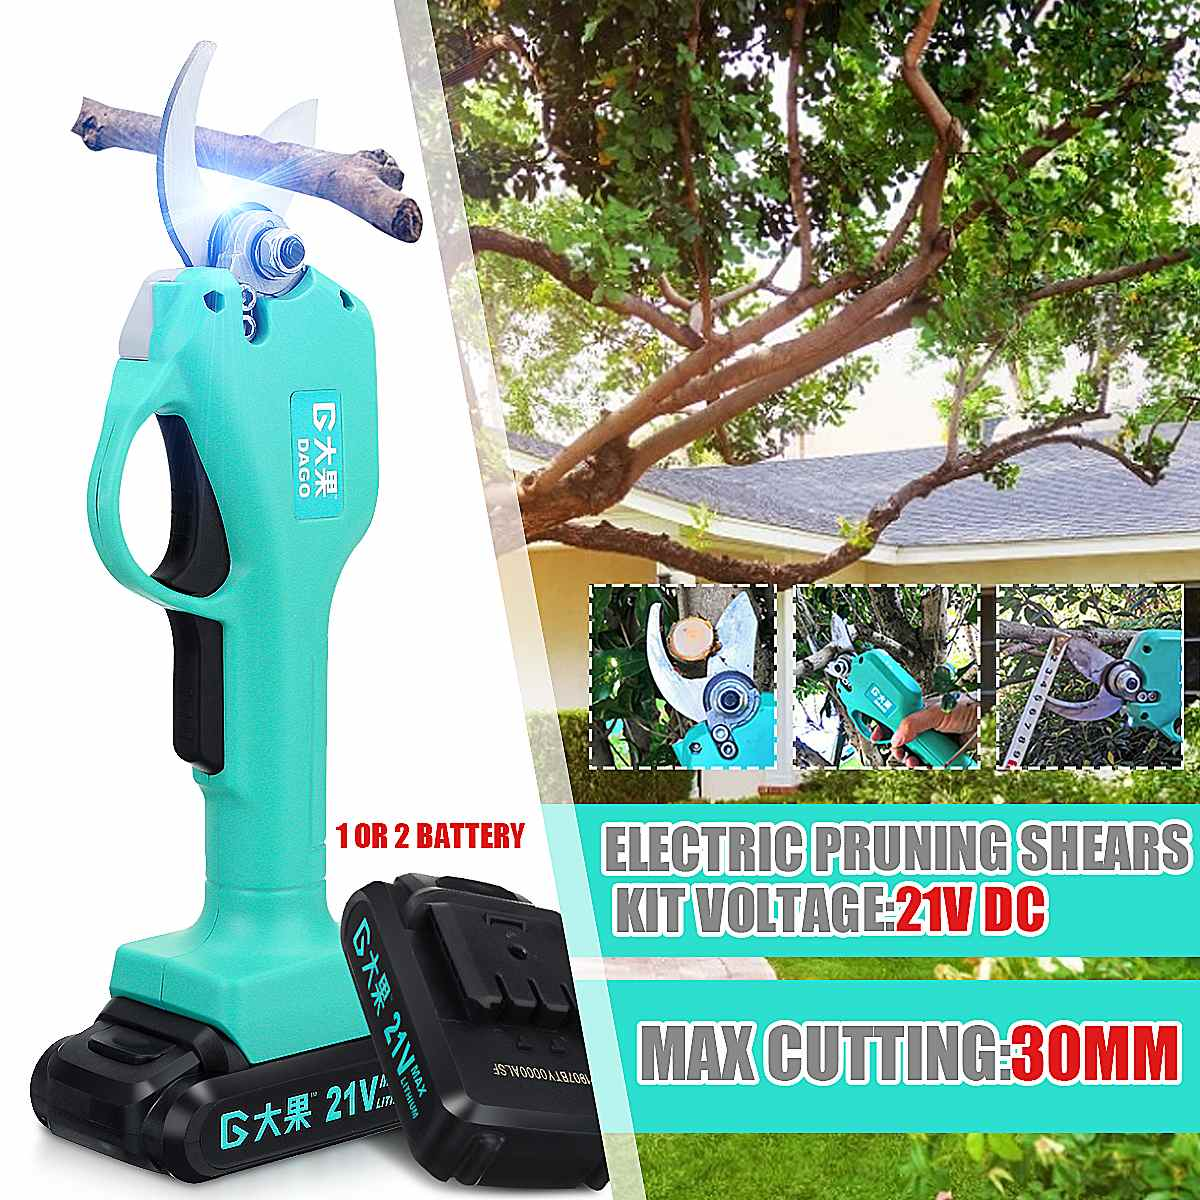 900W Cordless Pruner Electric Pruning Shear with 1/2 Lithium-ion Battery Efficient Fruit Tree Bonsai Pruning Branches Cutter